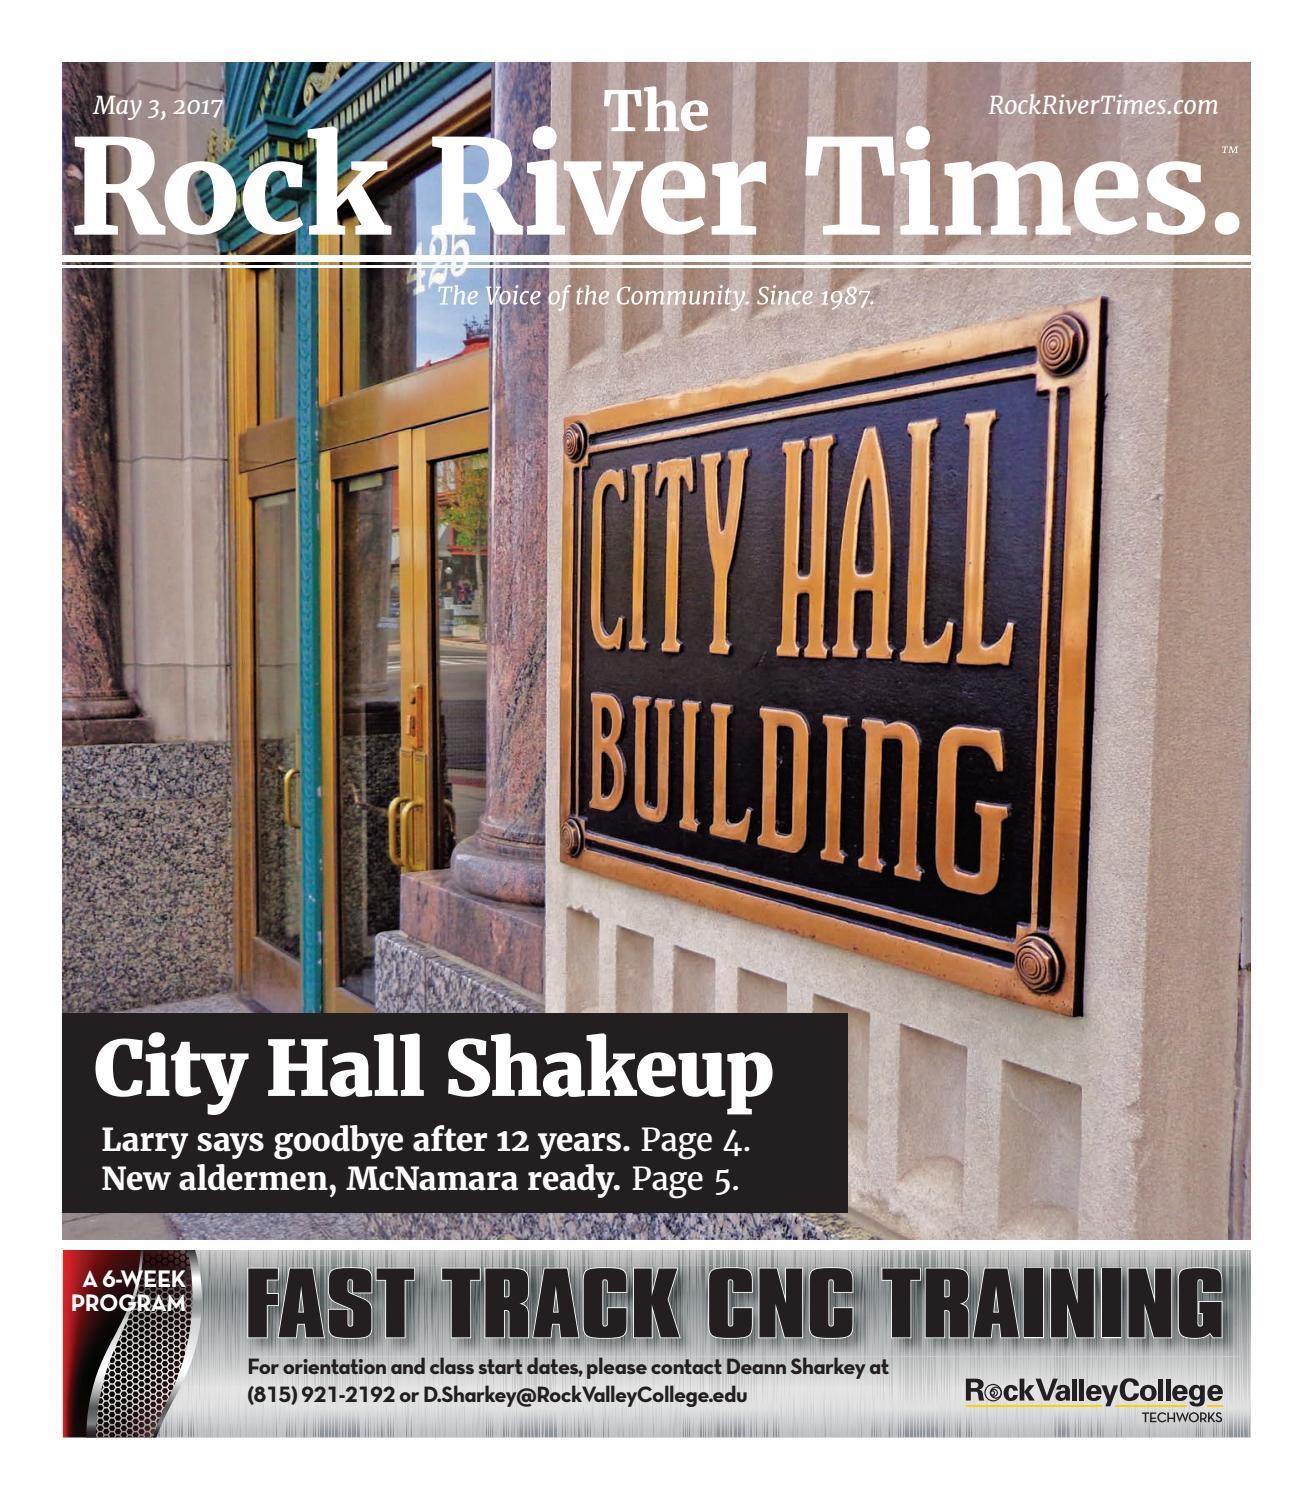 fe0543a114c The Rock River Times